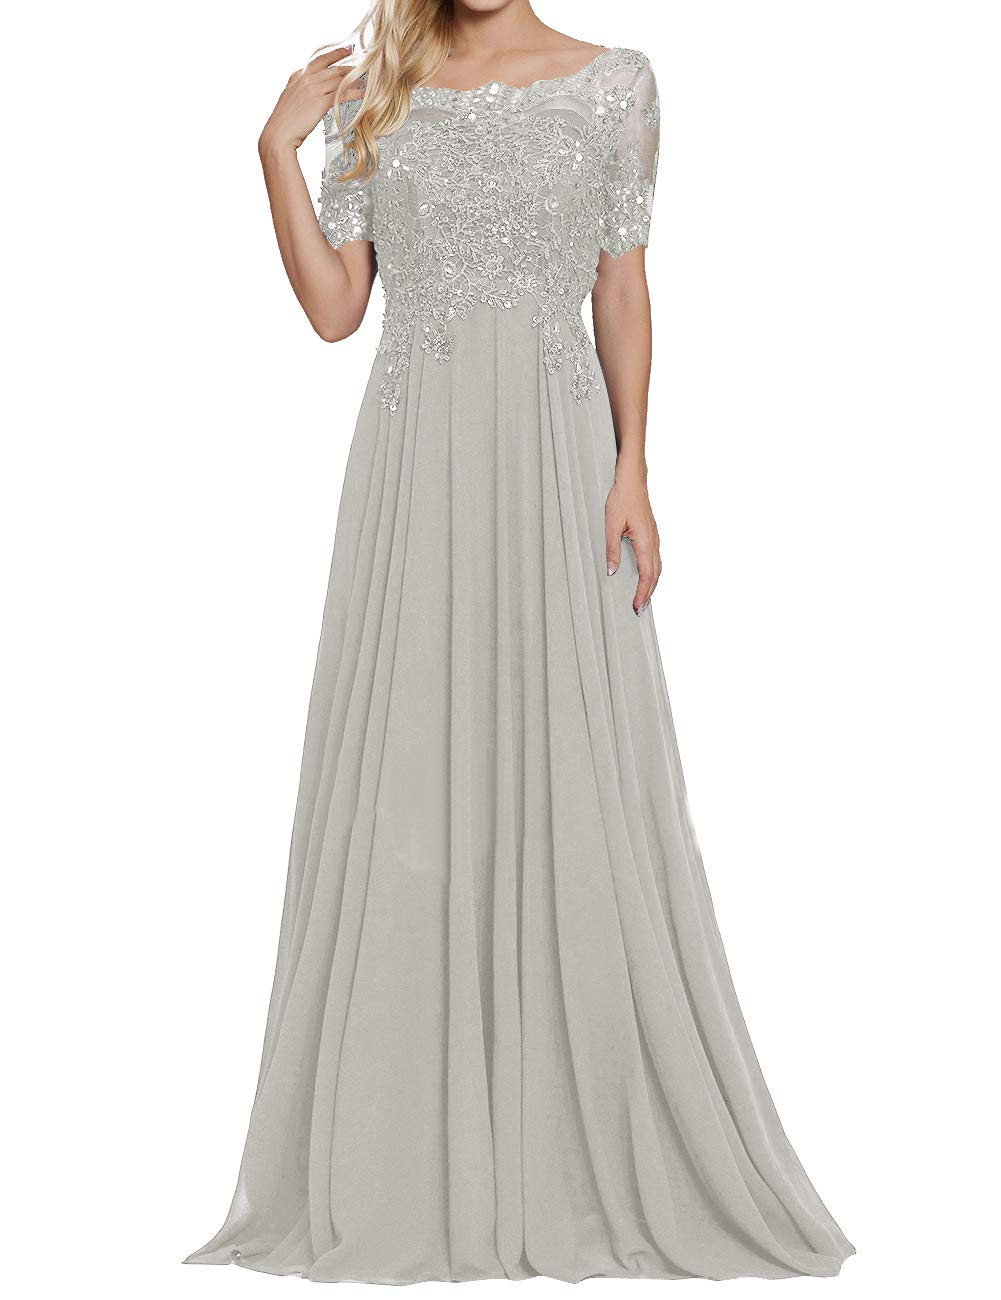 Mother Of The Bride Dresses - Mother Of The Bride Dresses Appliques Beaded Chiffon Evening Formal Dress